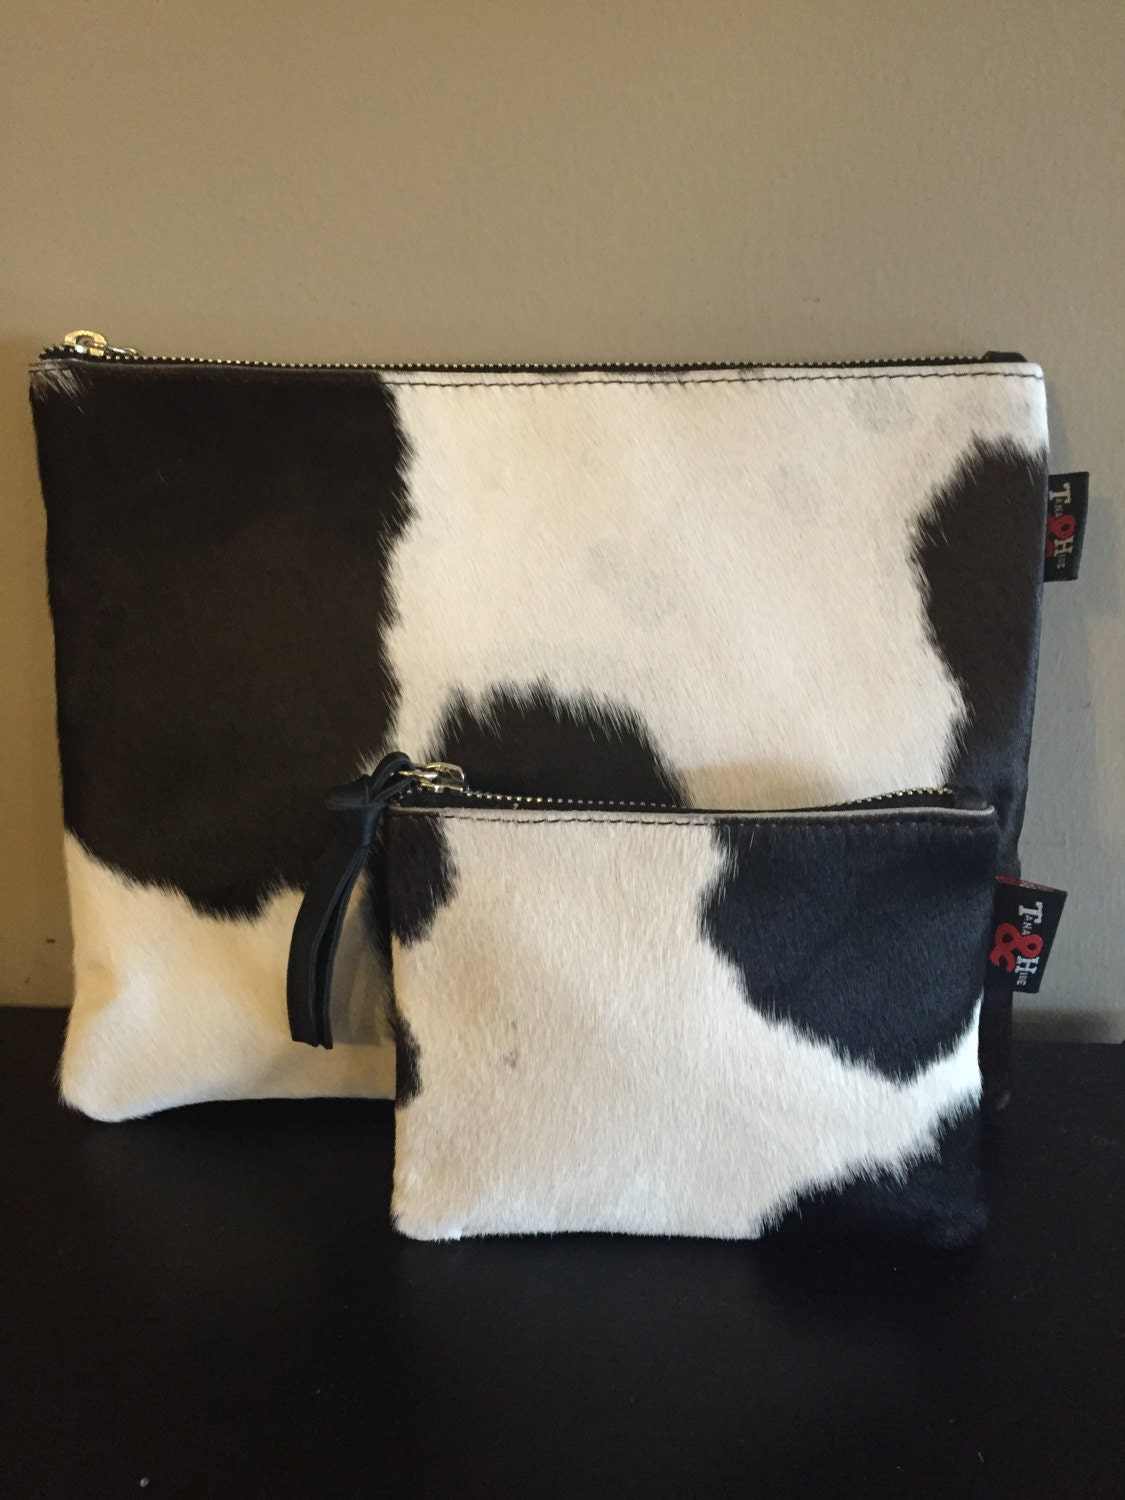 Cow Hide Hair Clutch Bag This Quality Unique Clutch Bag Has